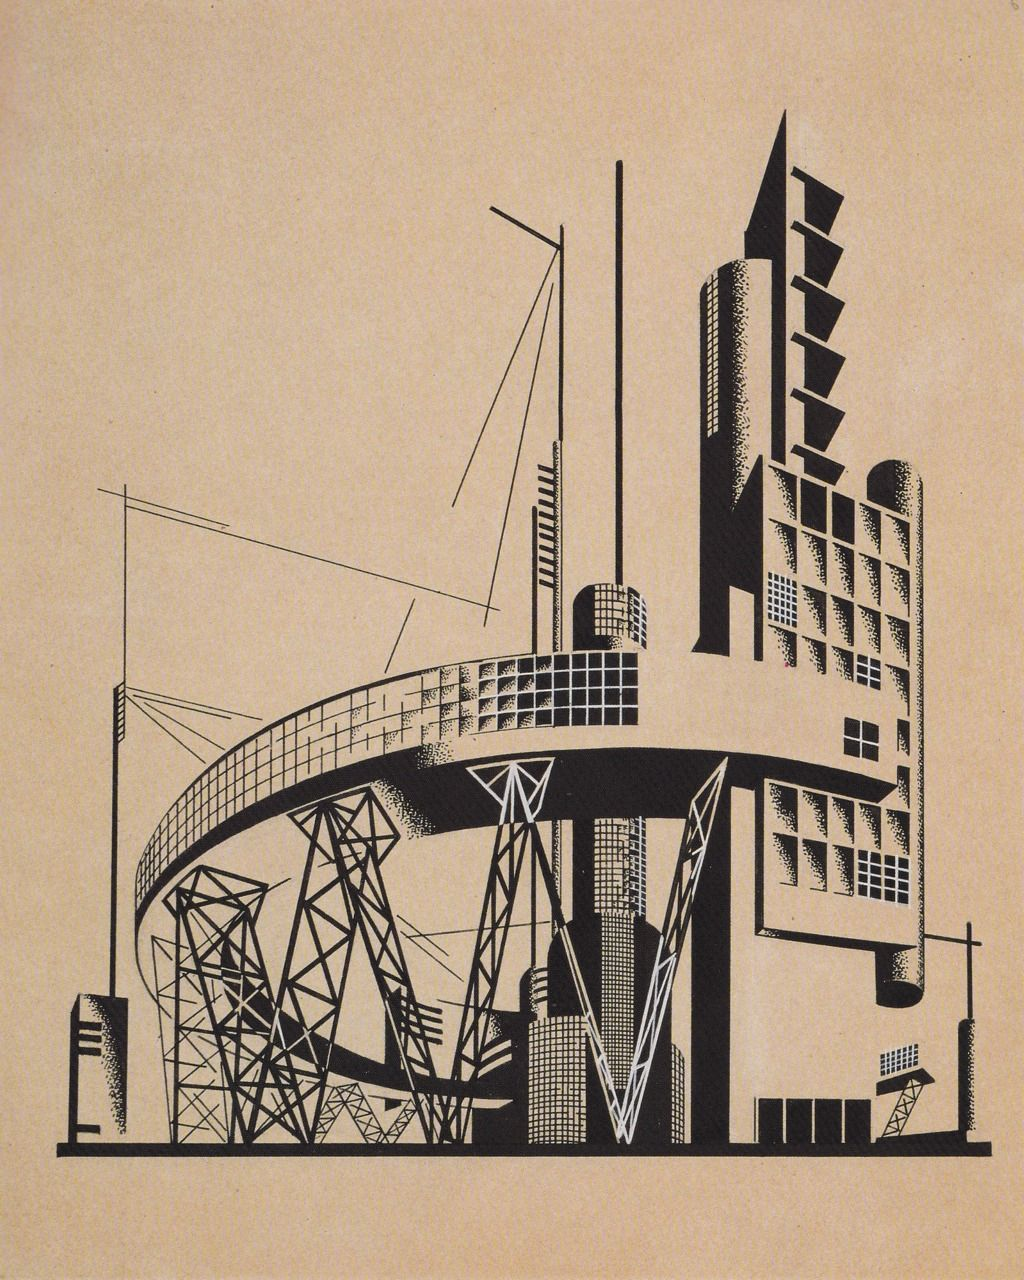 How to Recognize the Influence of Bauhaus Style?